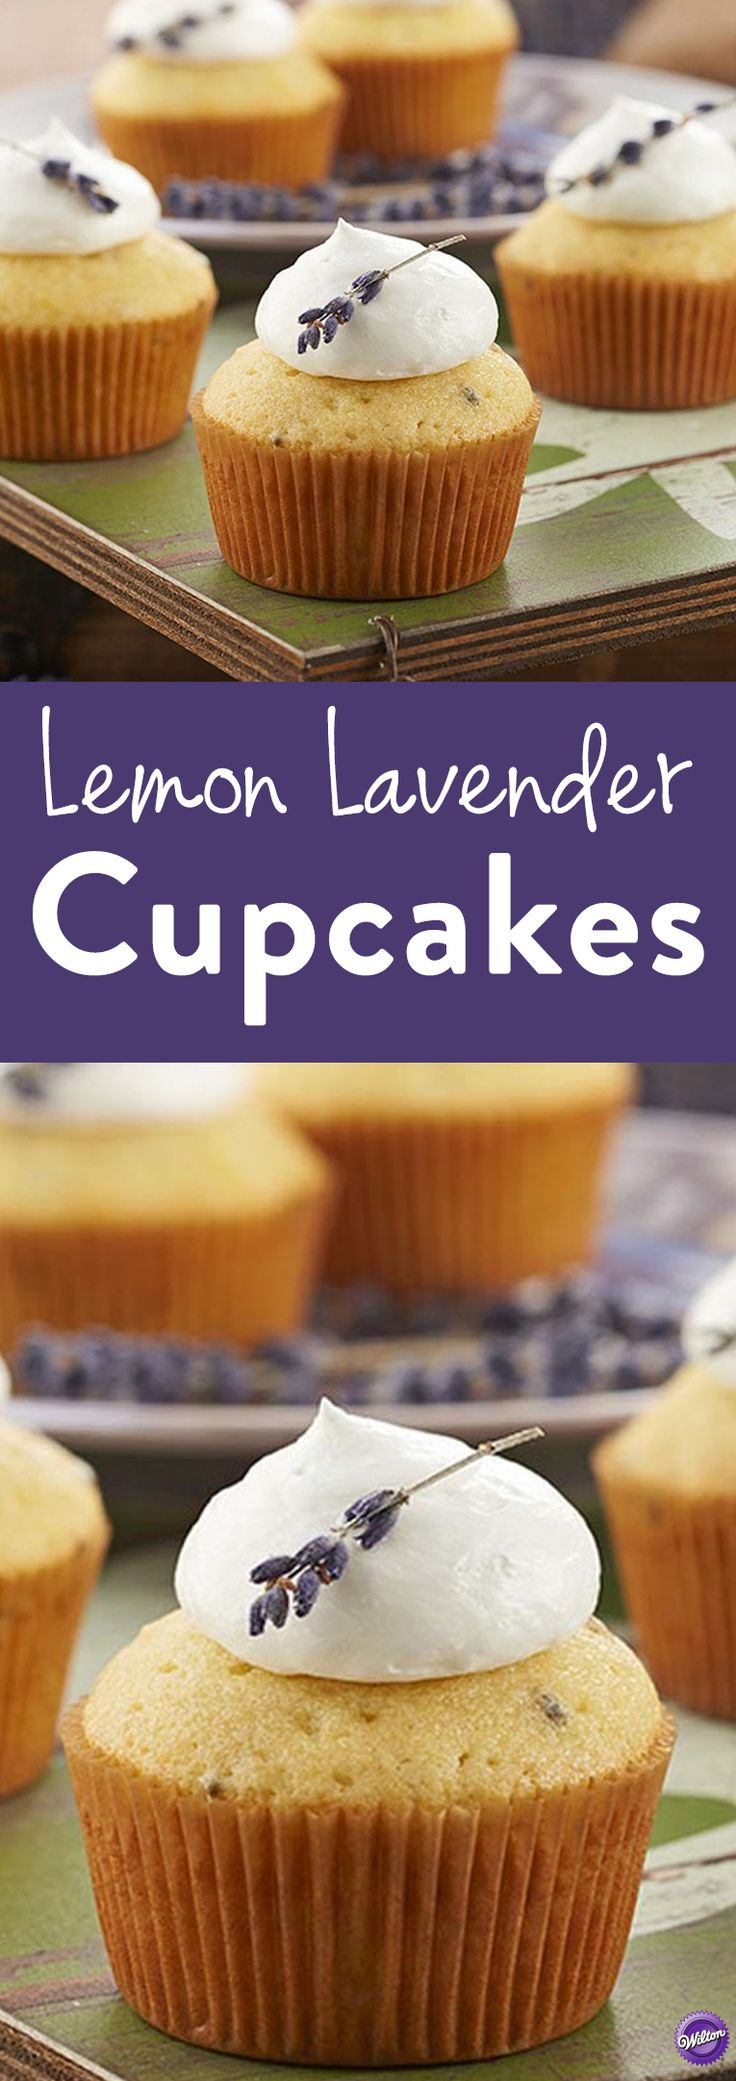 How to Make Lemon Lavender Cupcakes - The perfect balance of floral lavender and citrusy lemon blend together for a deliciously moist cupcake that's perfect for Sunday tea, a ladies lunch or an afternoon treat.